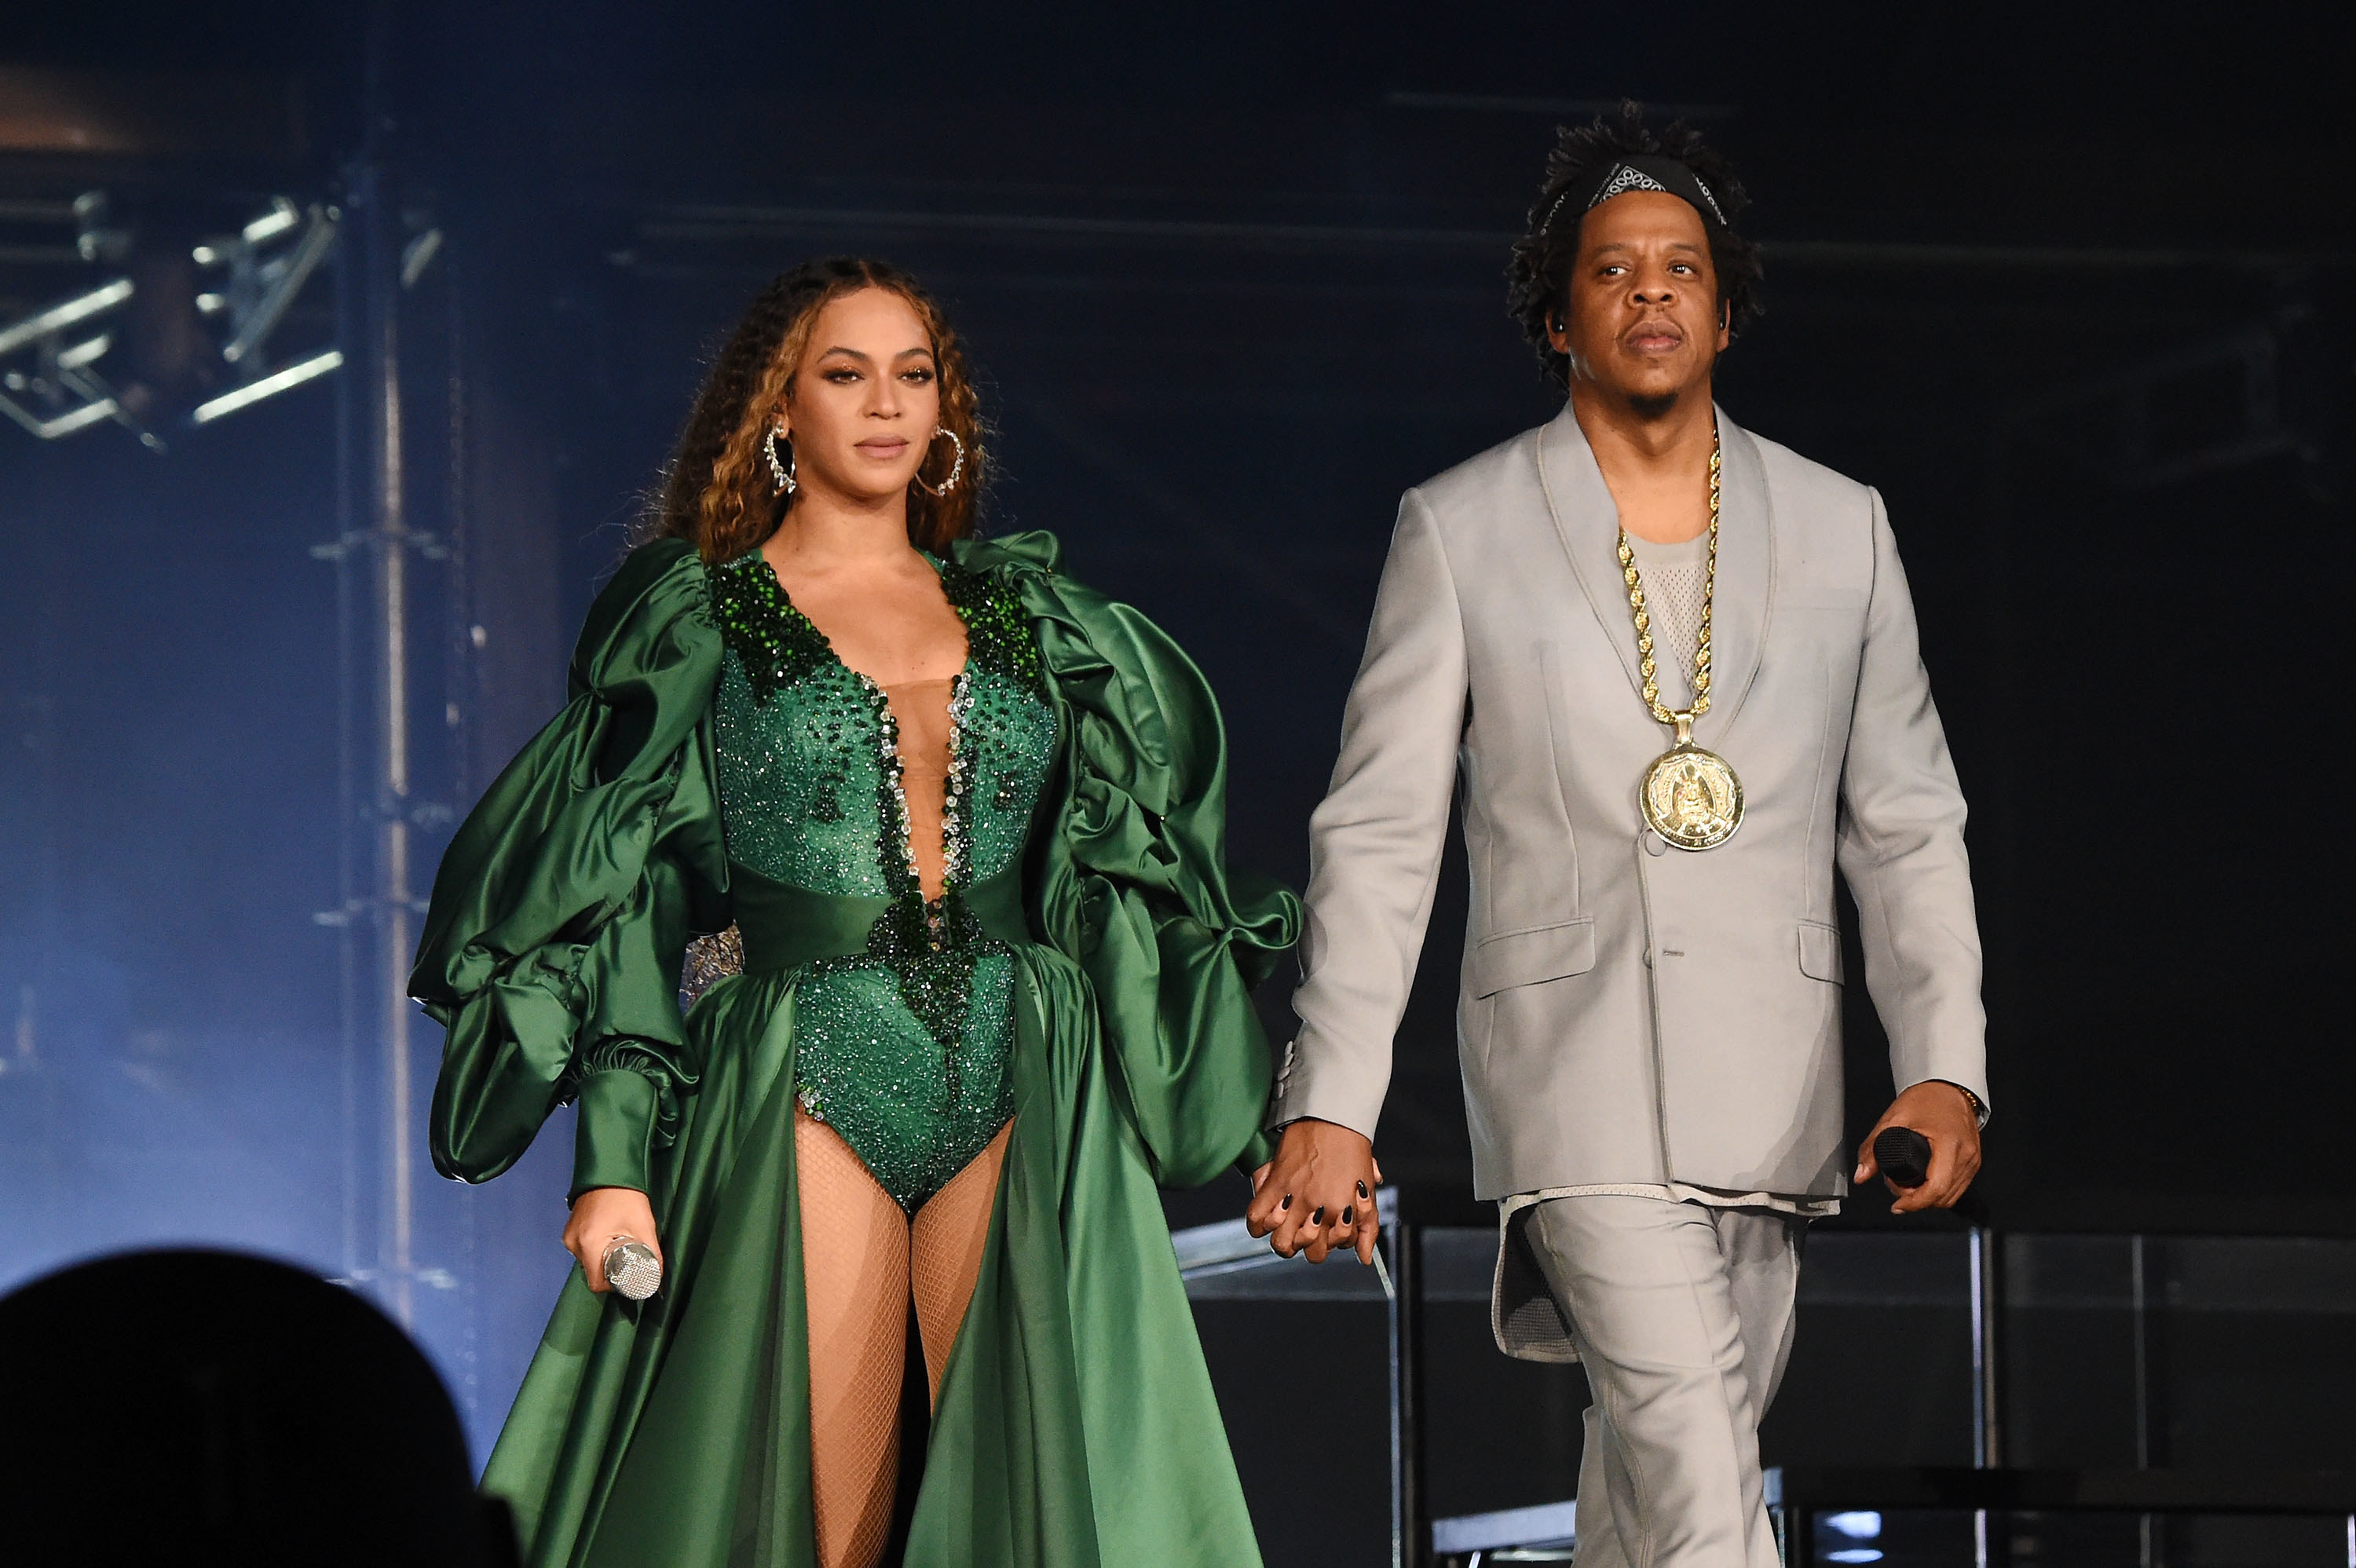 Beyonce and Jay-Z at the Global Citizen Festival Mandela 100 concert in 2018